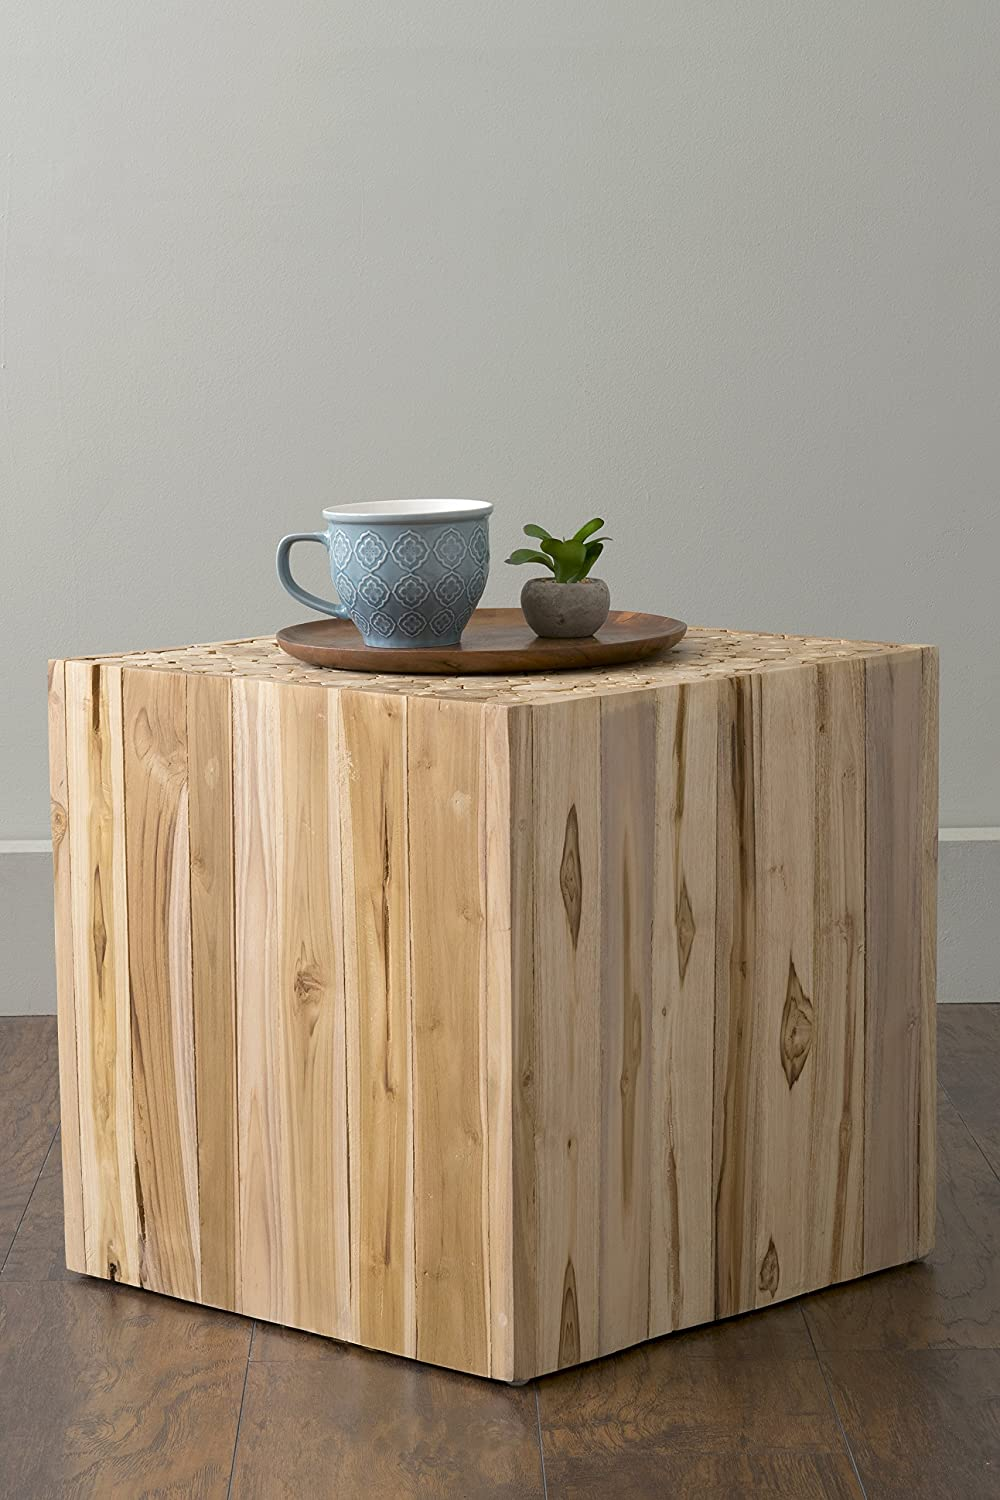 EAST at MAIN Merrill Brown Teakwood Square Accent Table, (18x18x18)